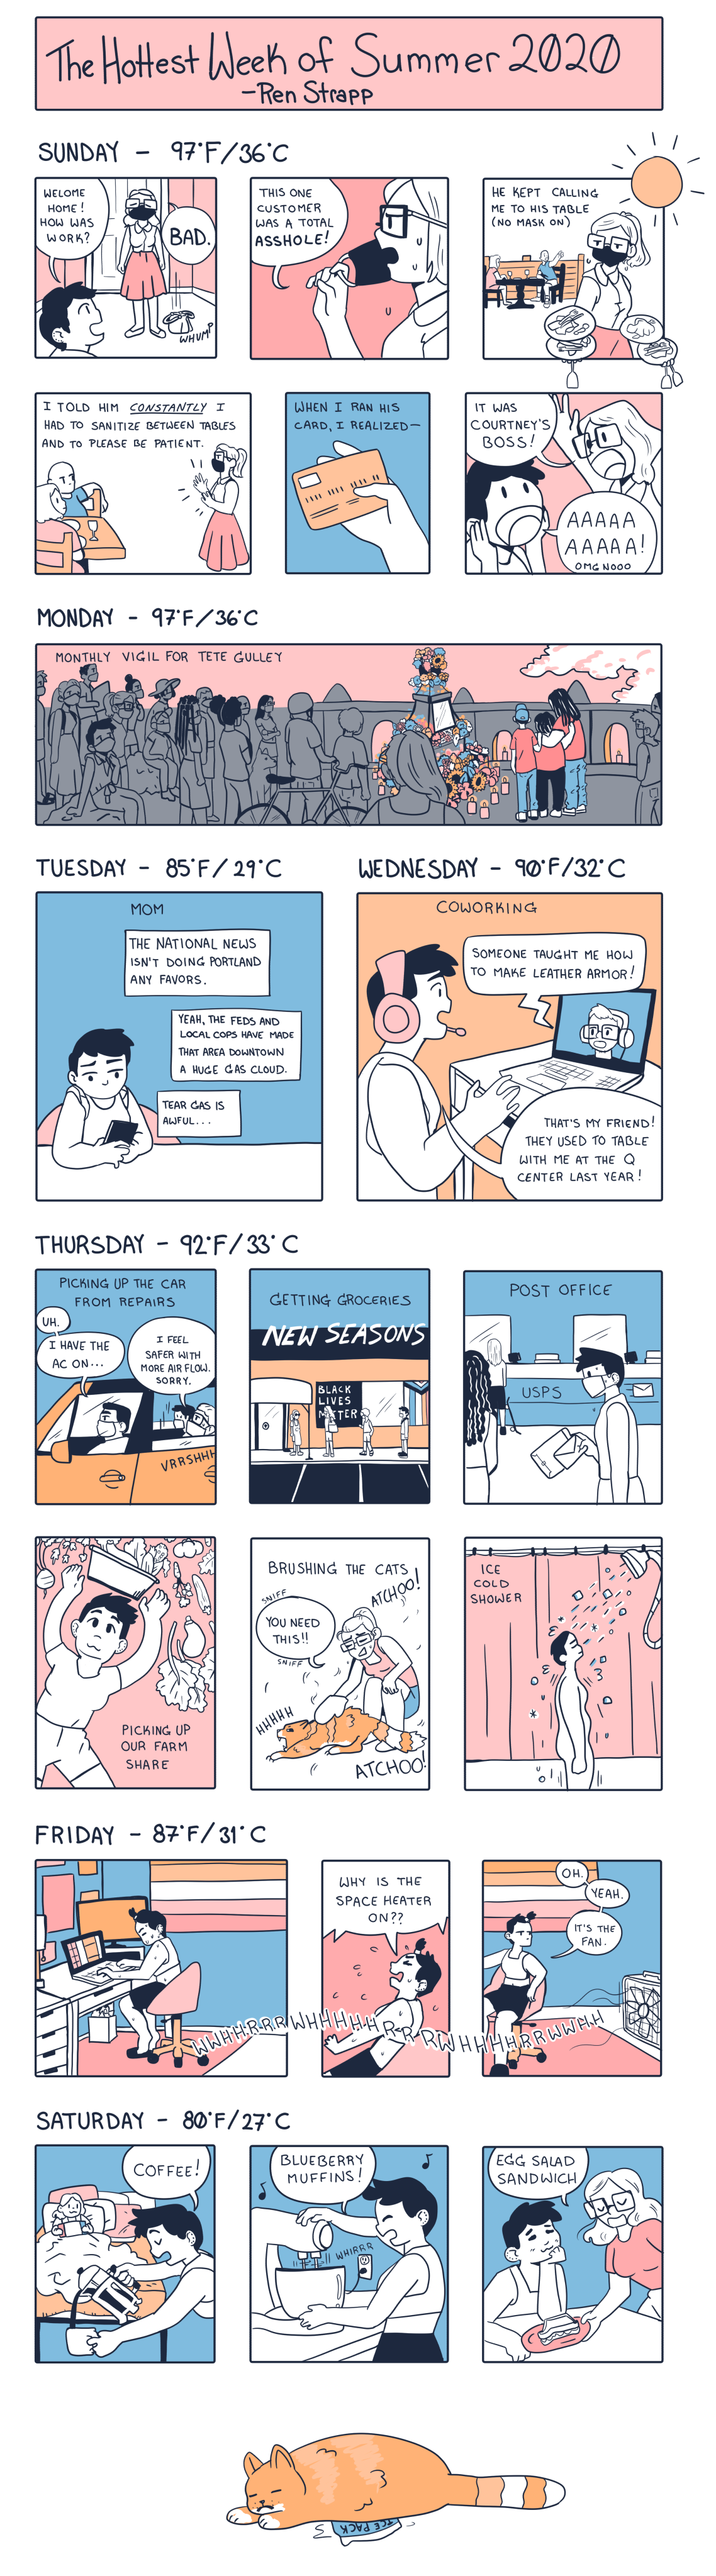 """A cartoon with the palette of peachy-pink, sky blue, and tangerine orange. The comic depicts a fictional week in Portland known as """"The Hottest Week of Summer 2020."""" Queers in the service industry are forced to serve customers without masks, there's a vigil for black lives who have been murdered by the police, the Portland protests continue, fans continue to blow around hot air in record high temperatures, and a cat sleeps on an ice pack."""